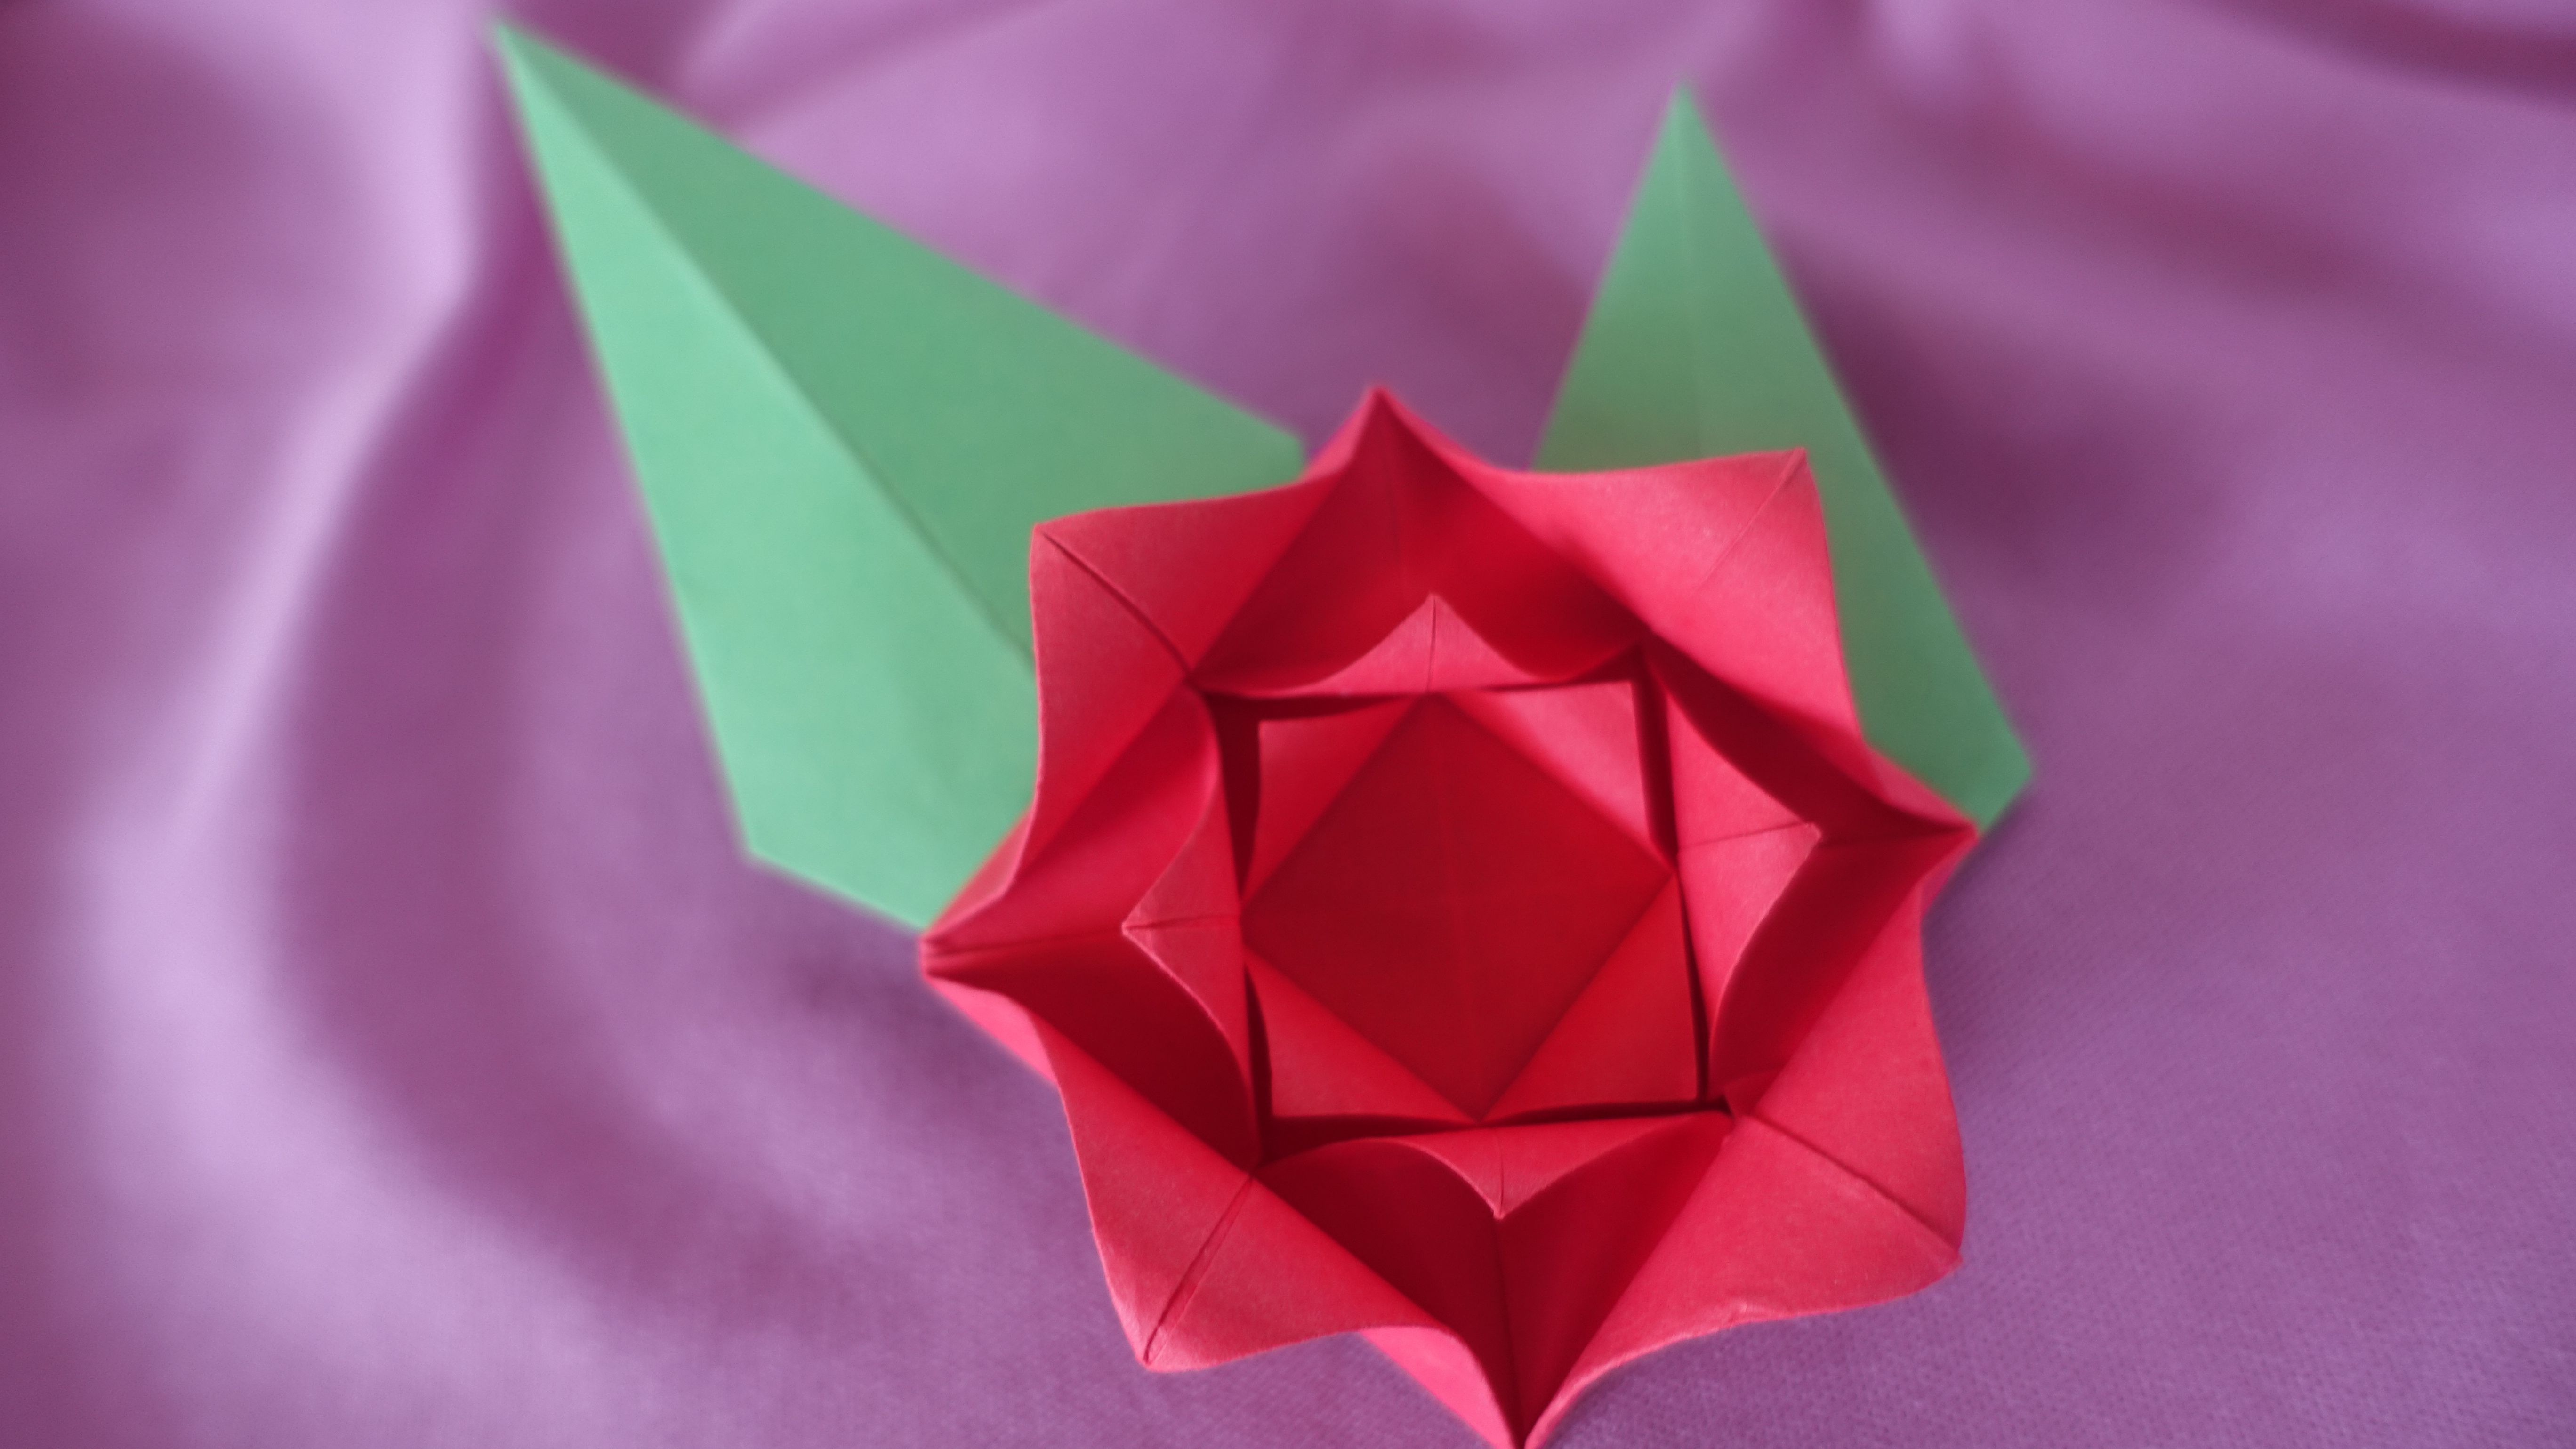 Simple and Cute Construction Paper Crafts for Kids Make An Easy Origami Rose